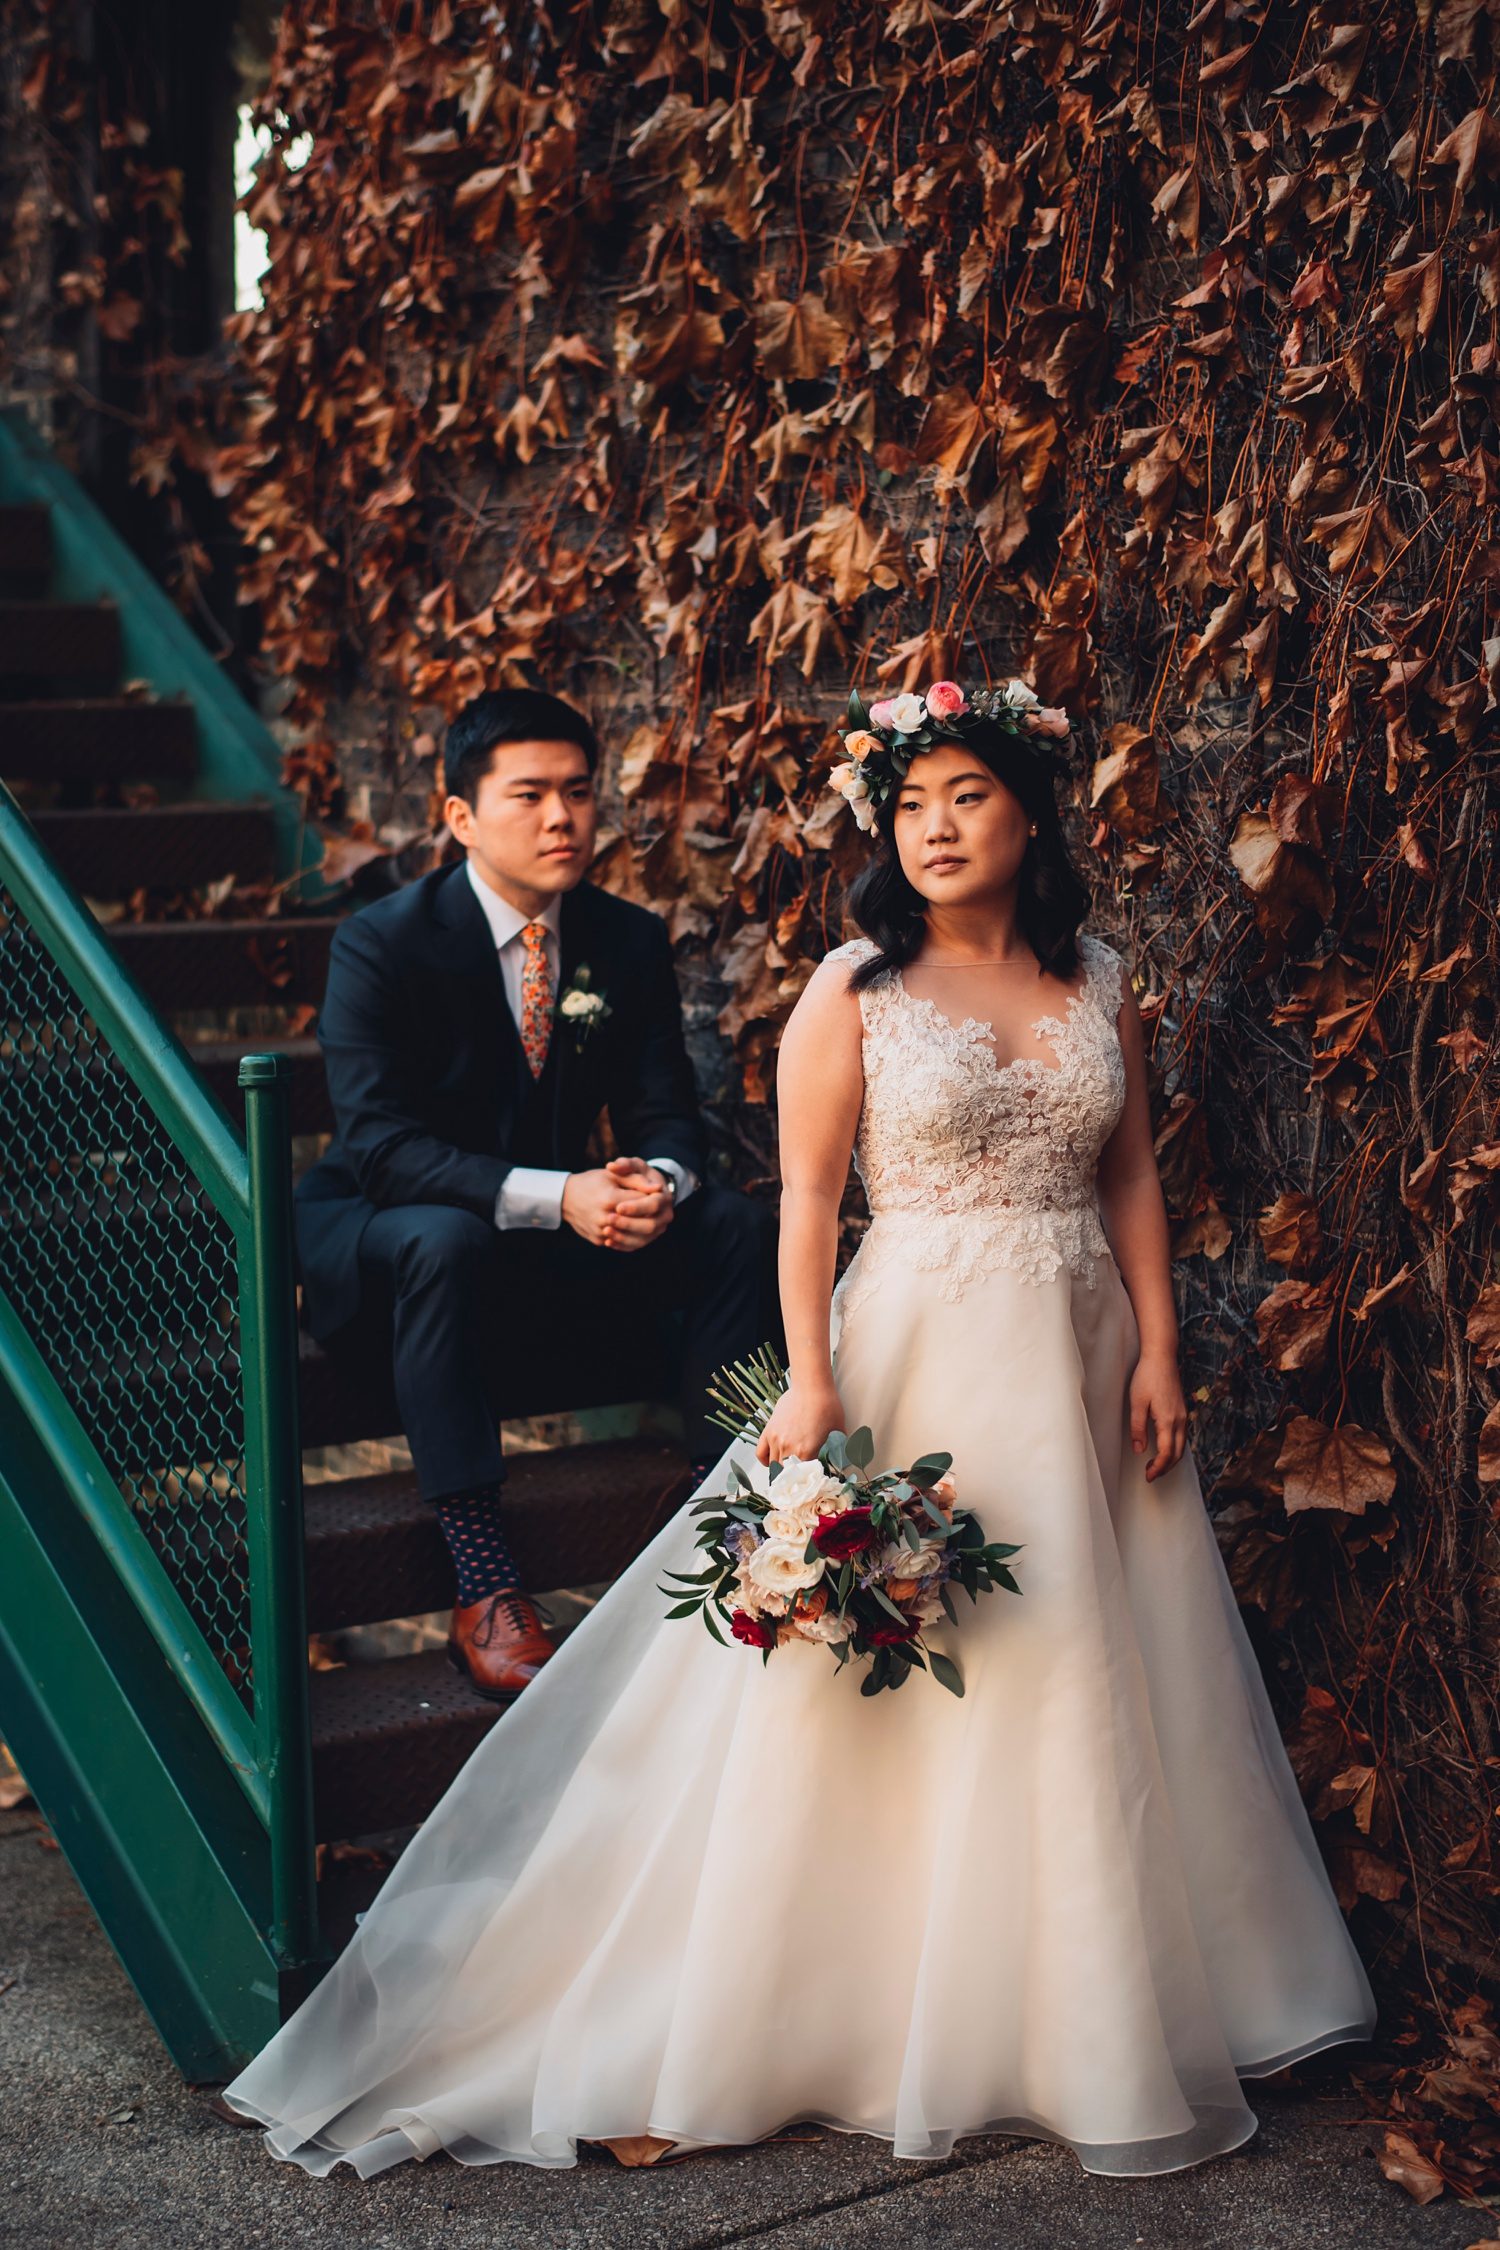 Firehouse Chicago Wedding - portraits bride and groom